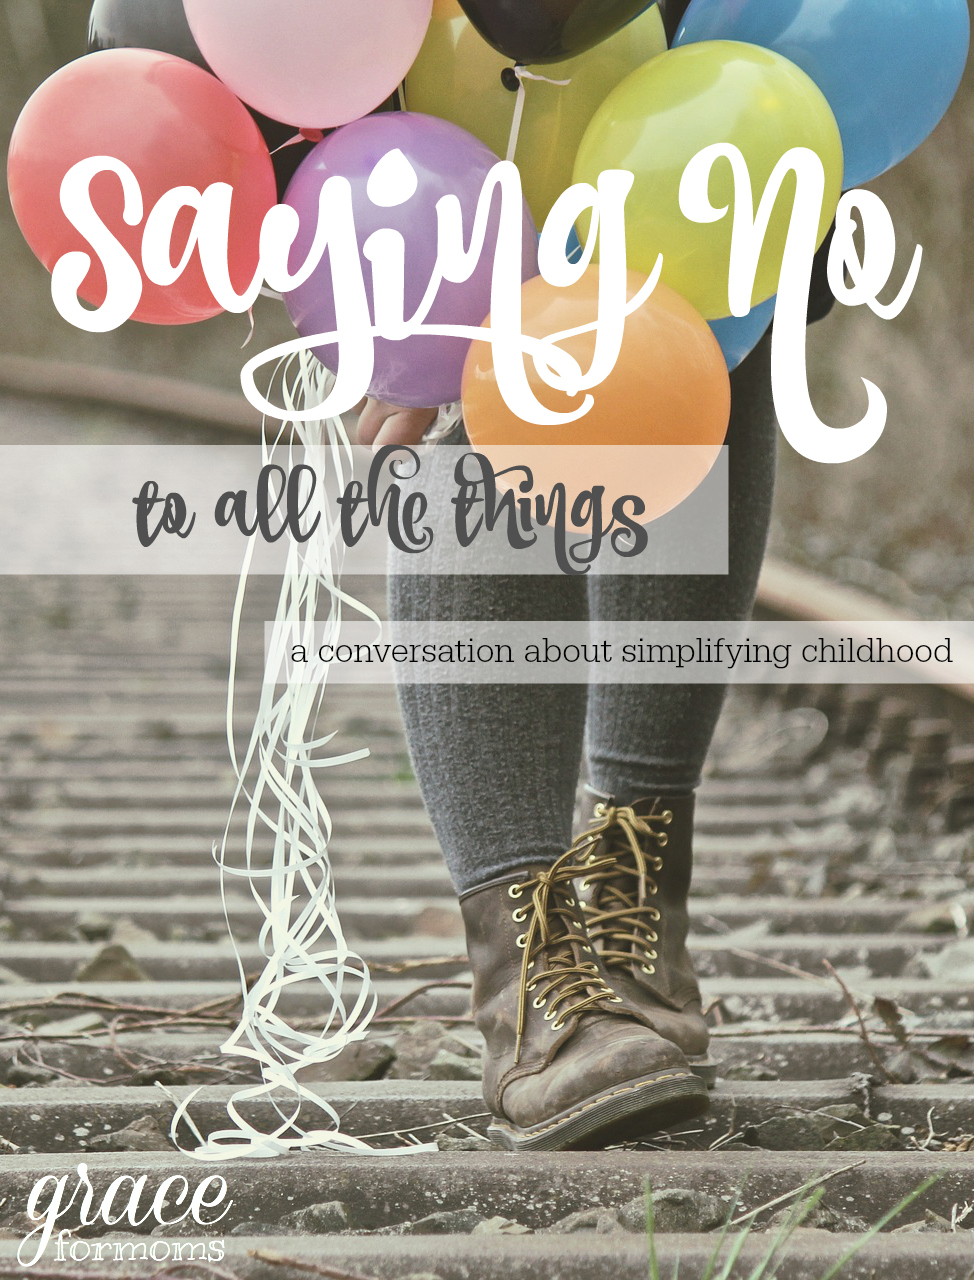 Saying No To All The Things, a conversation about simplifying childhood